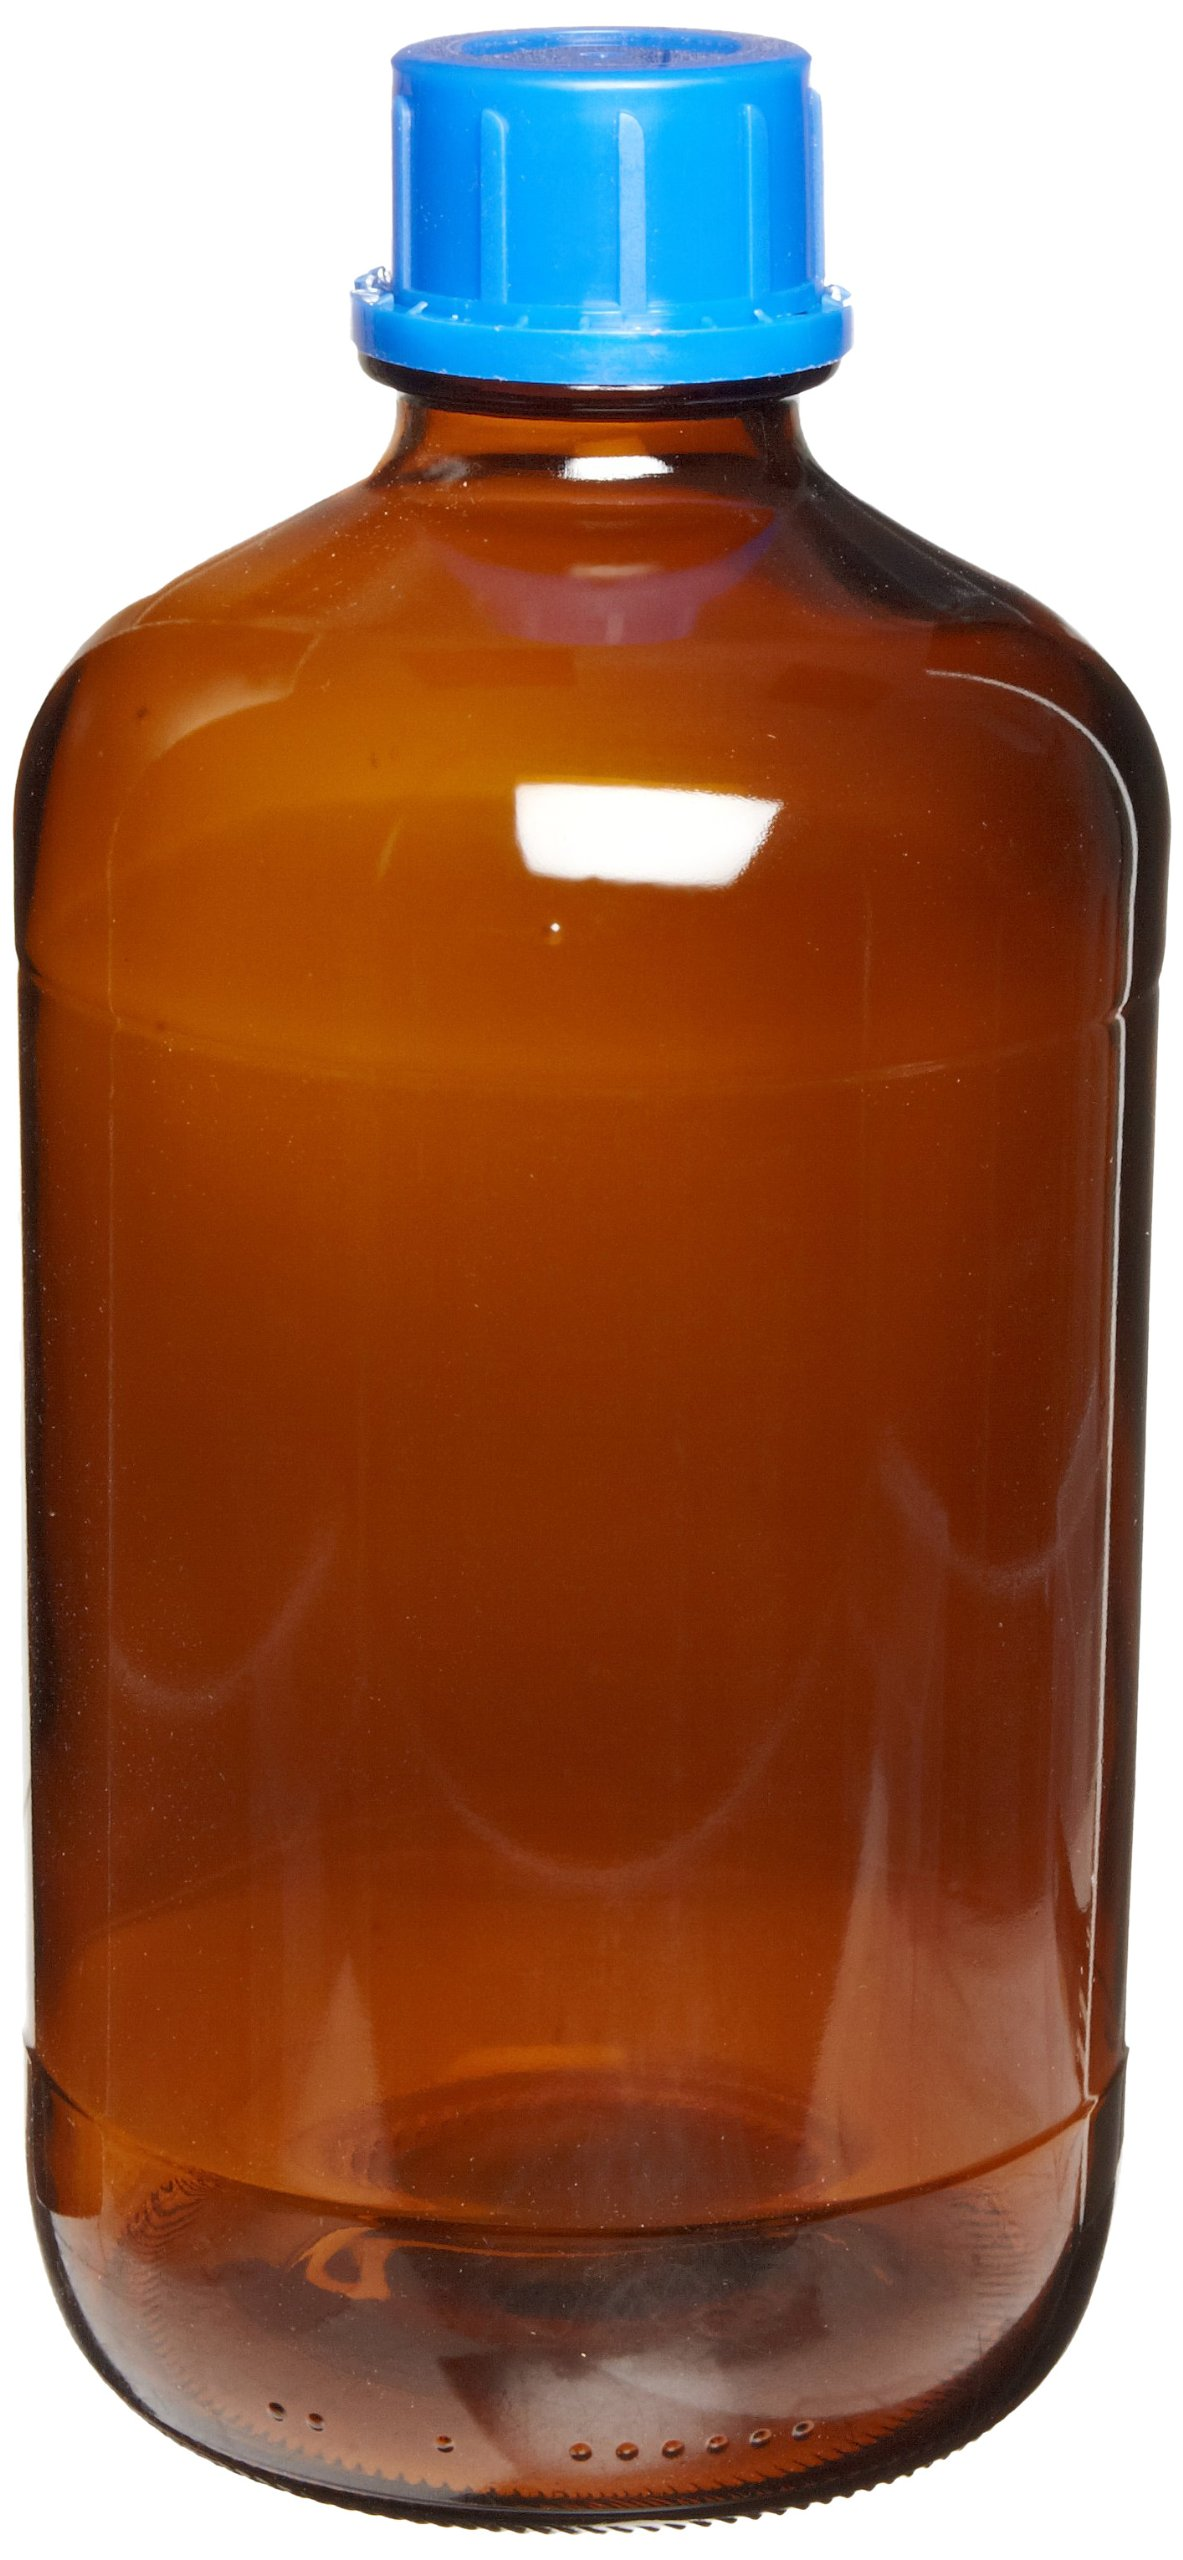 Scilogex 17400038 Amber Borosilicate Glass Autoclavable Bottle, 45mm Neck Diameter, 2.5L Capacity